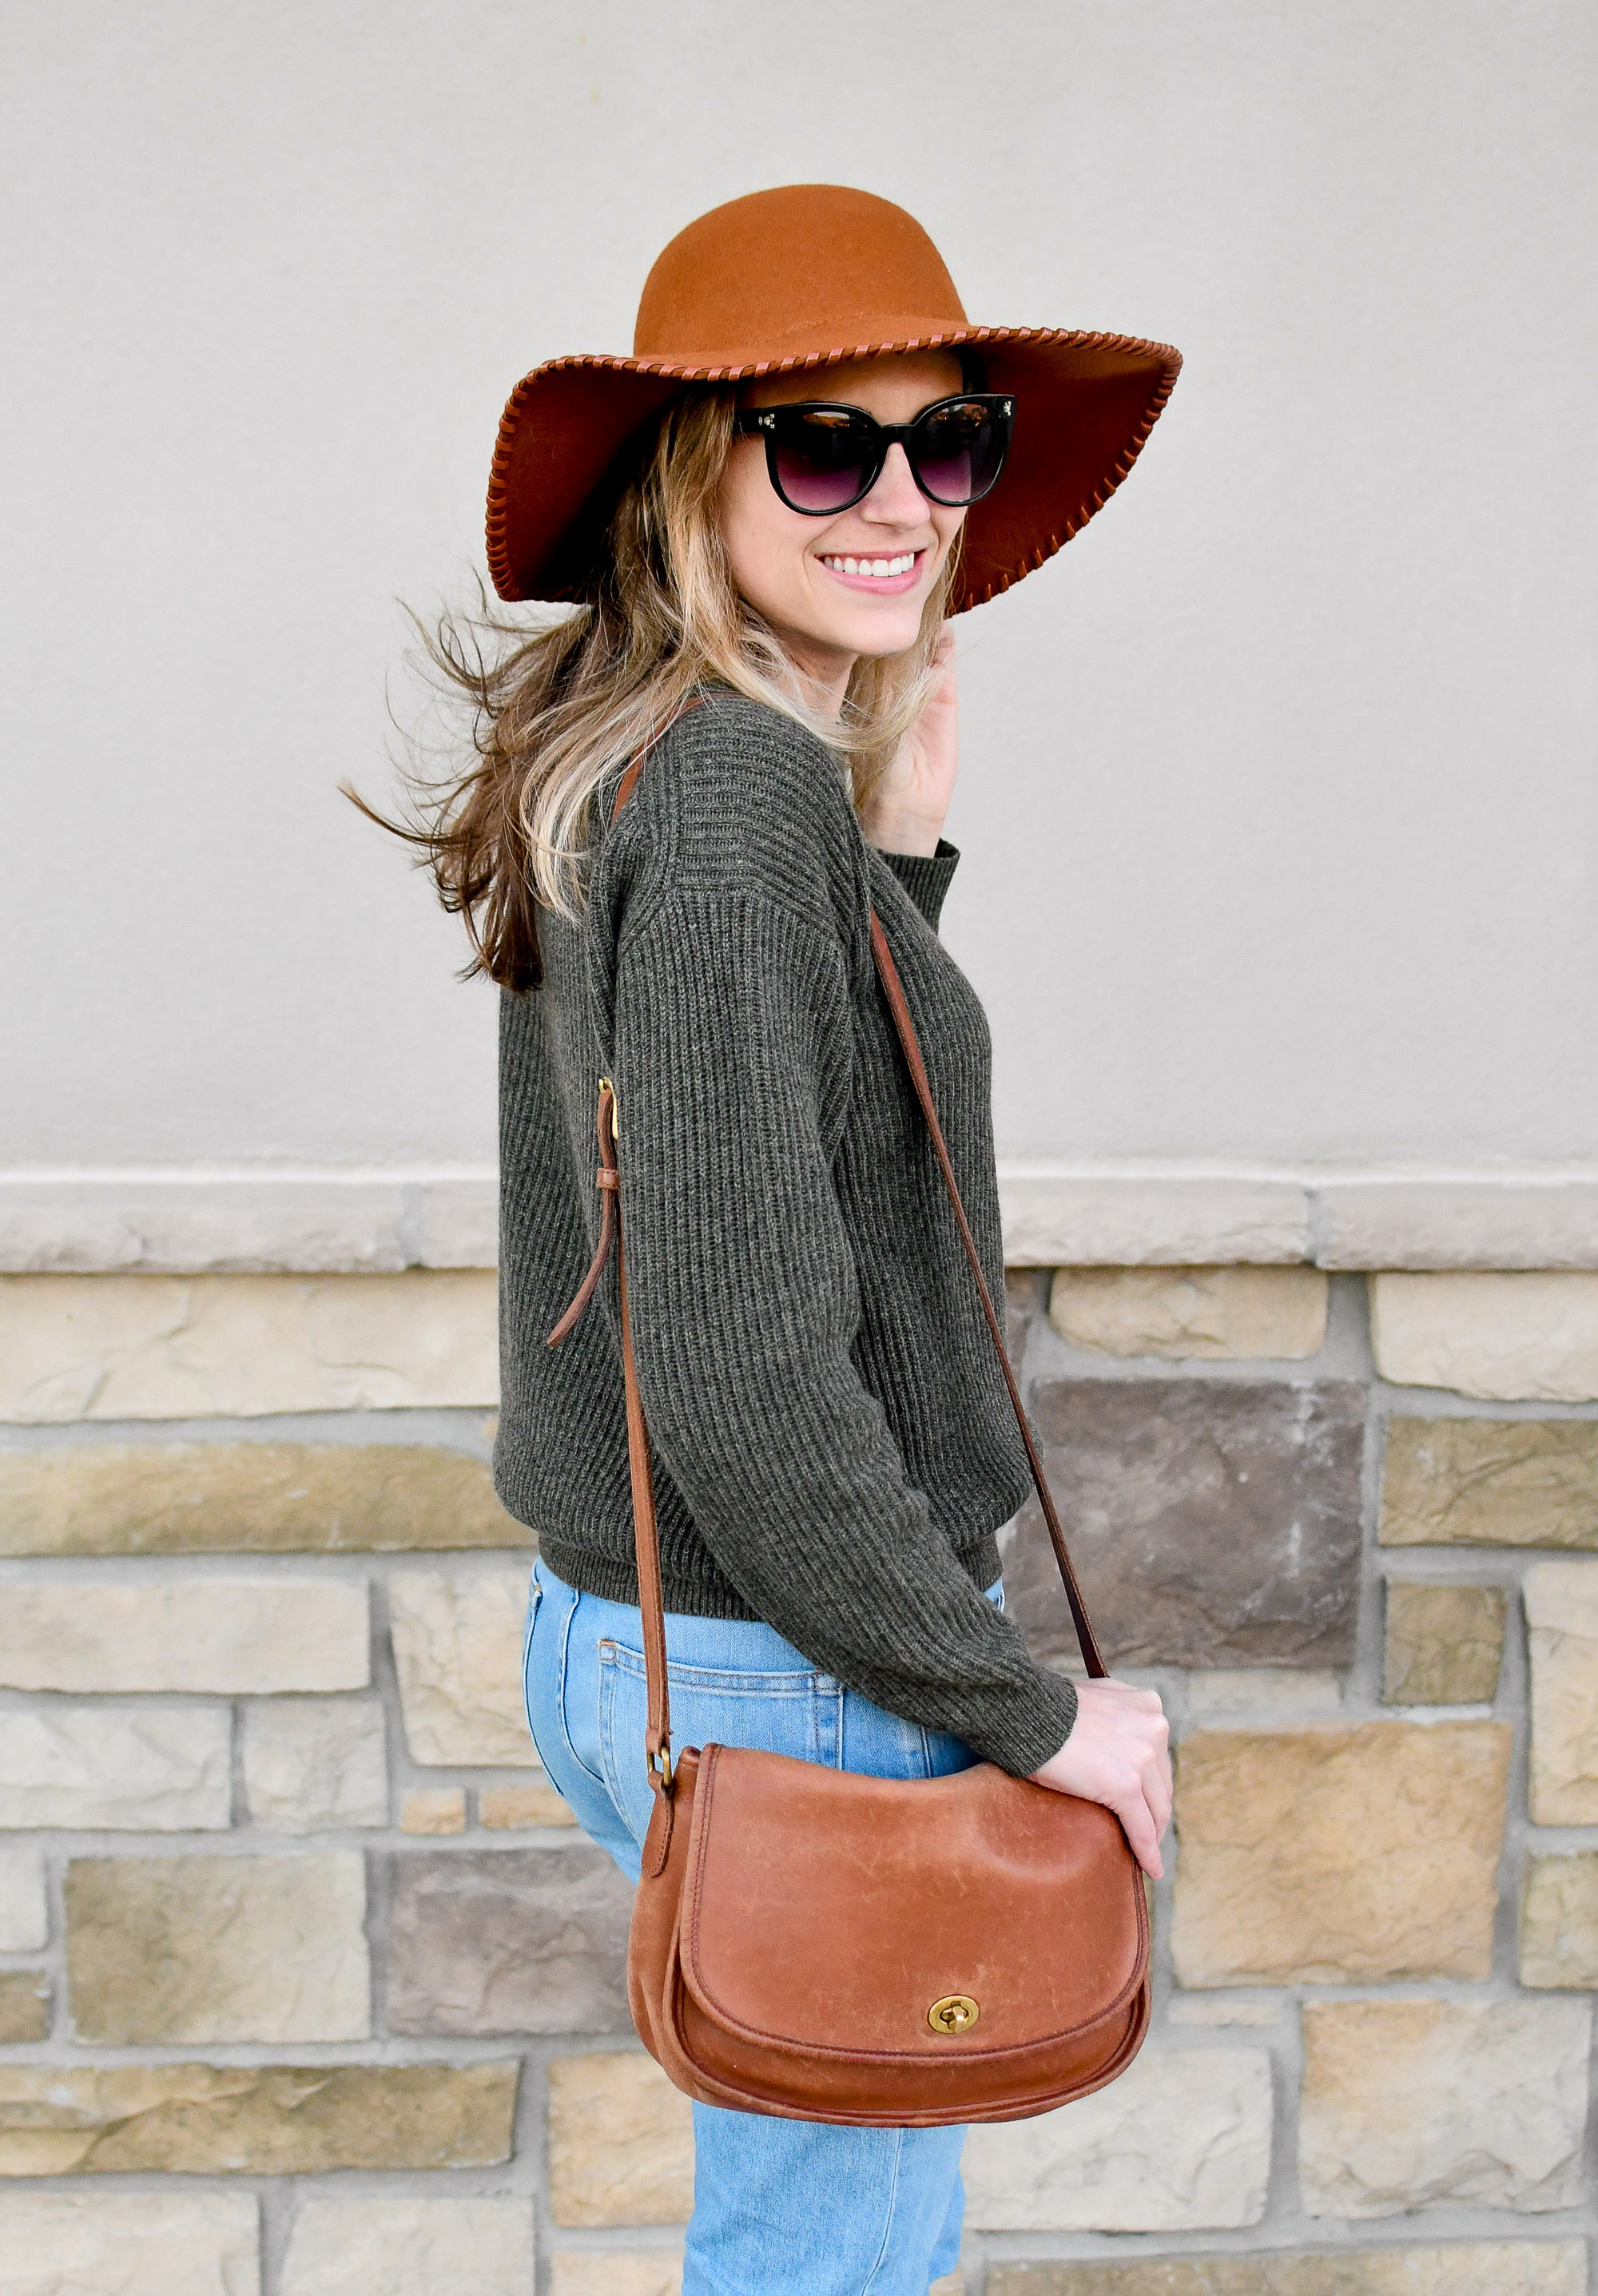 Vintage Coach 'City' crossbody bag fall outfit — Cotton Cashmere Cat Hair